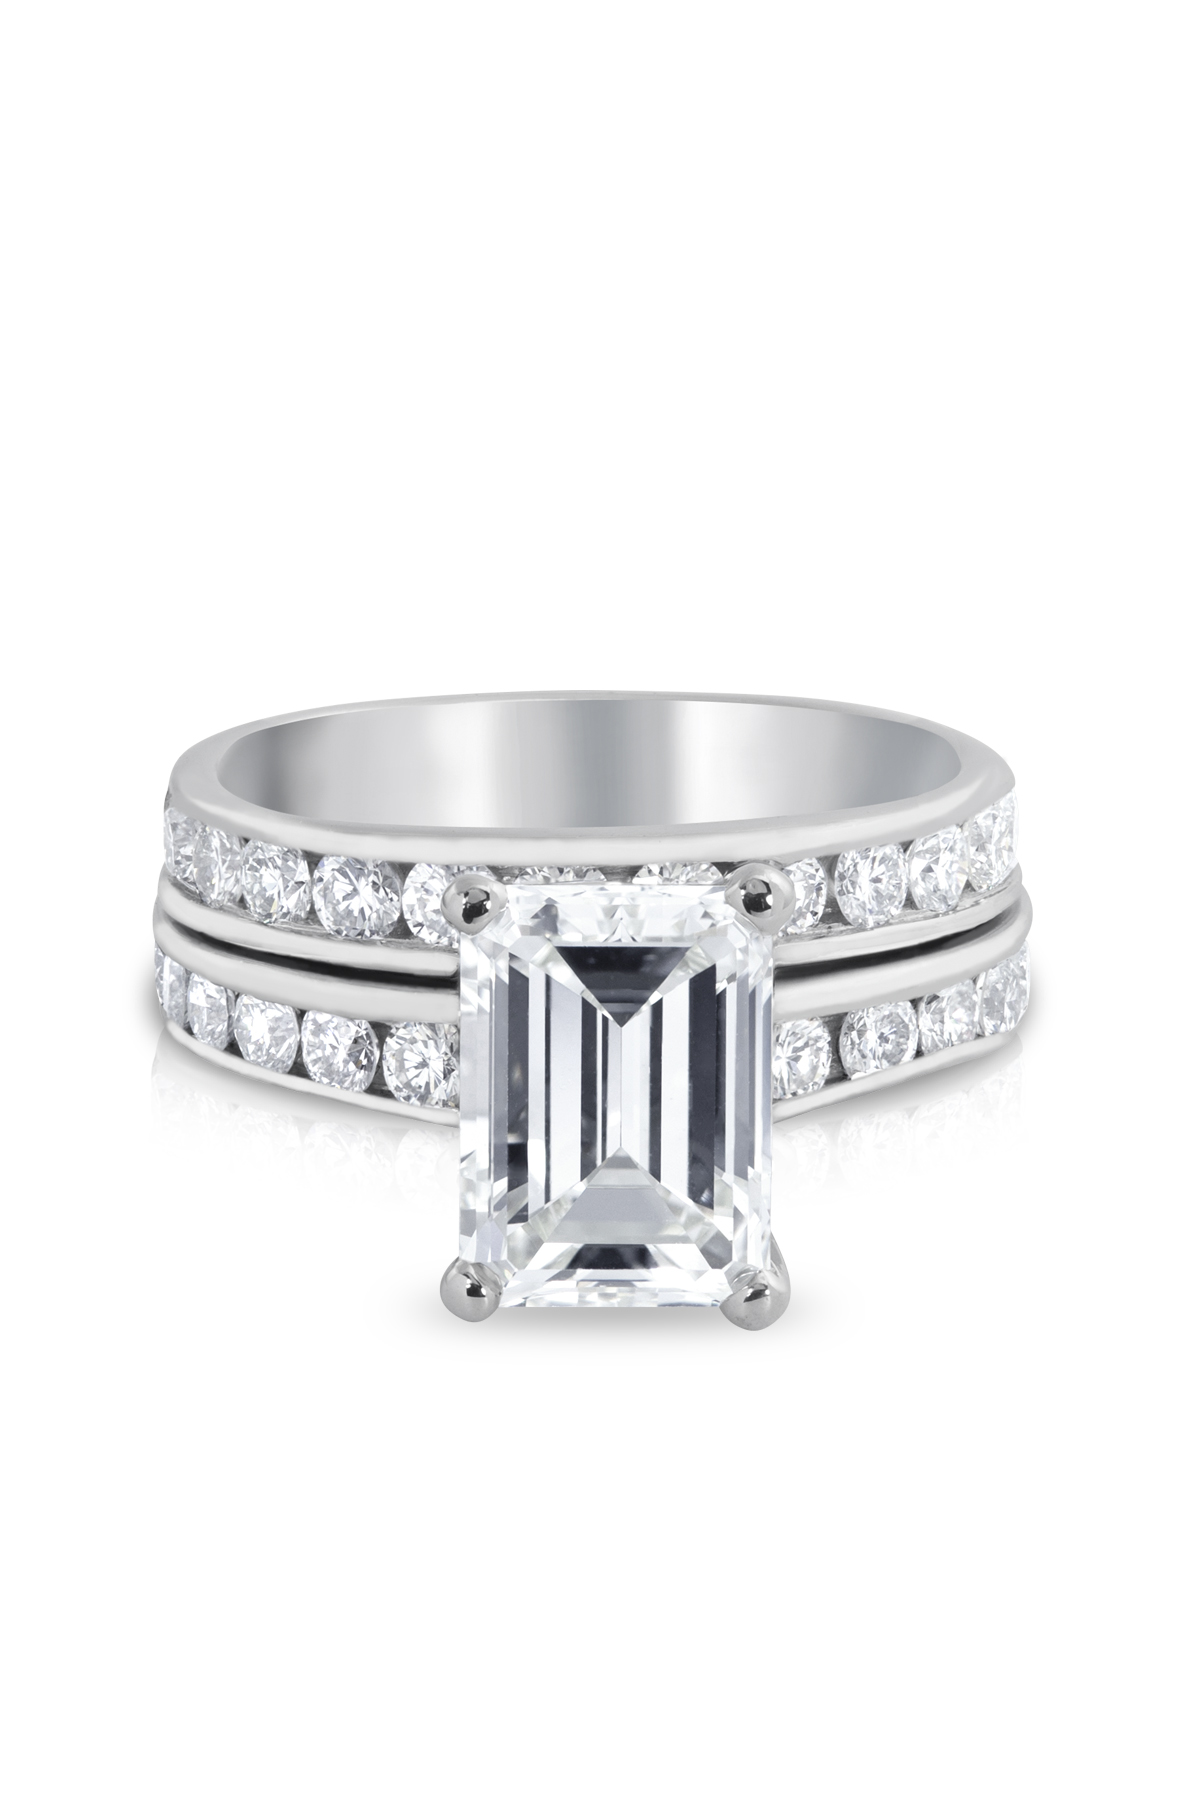 Emerald Cut Ring.jpg